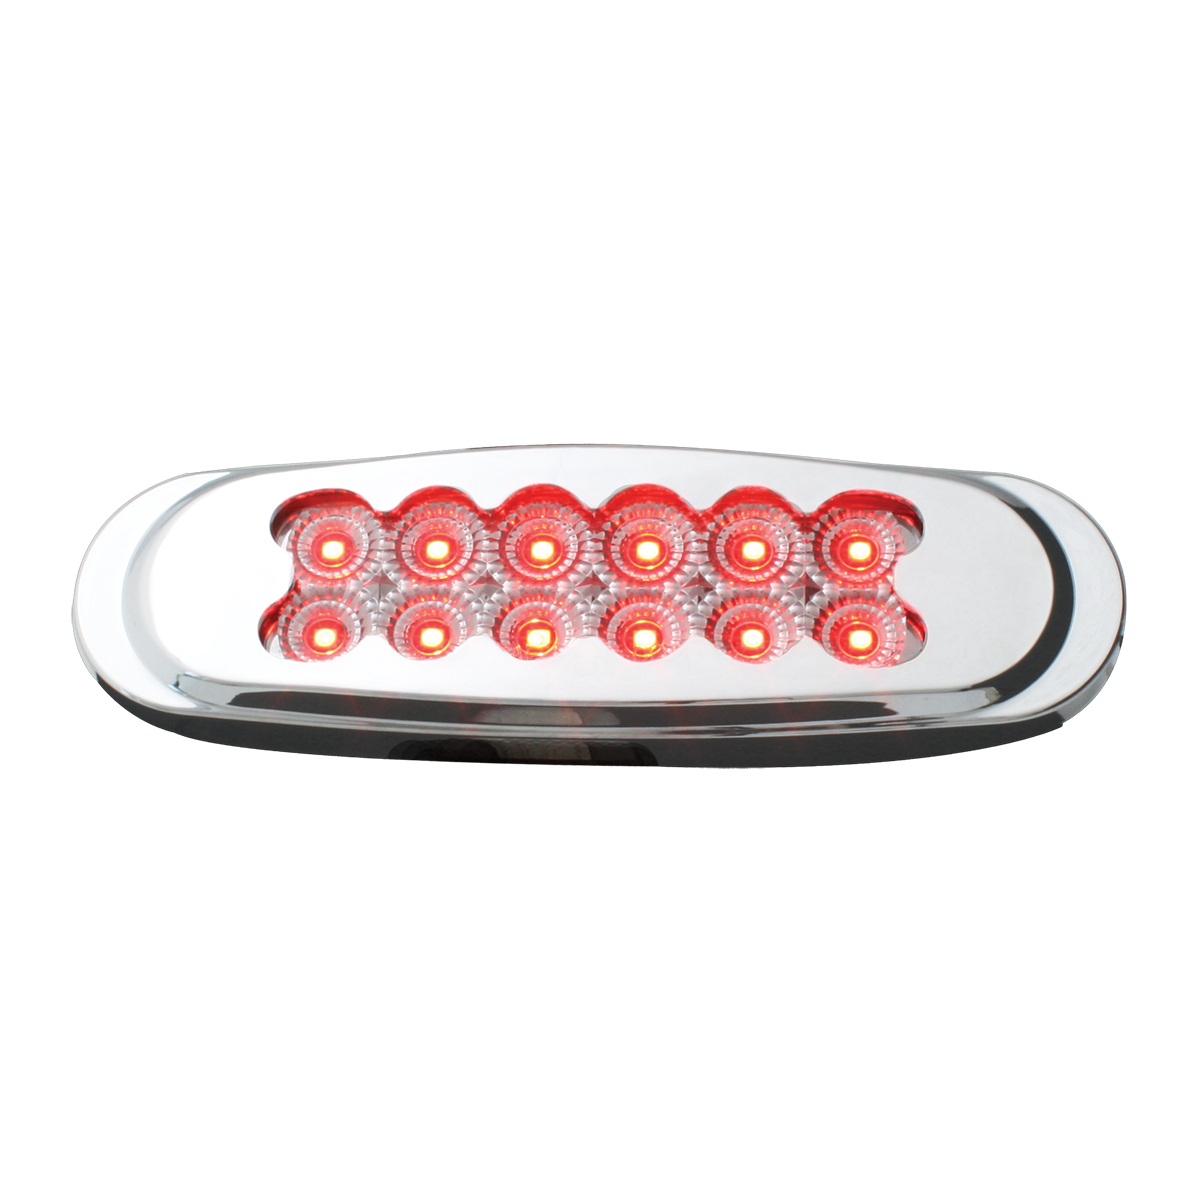 76703 Ultra Thin Spyder LED Marker Light w/ Chrome Plastic Matrix Bezel